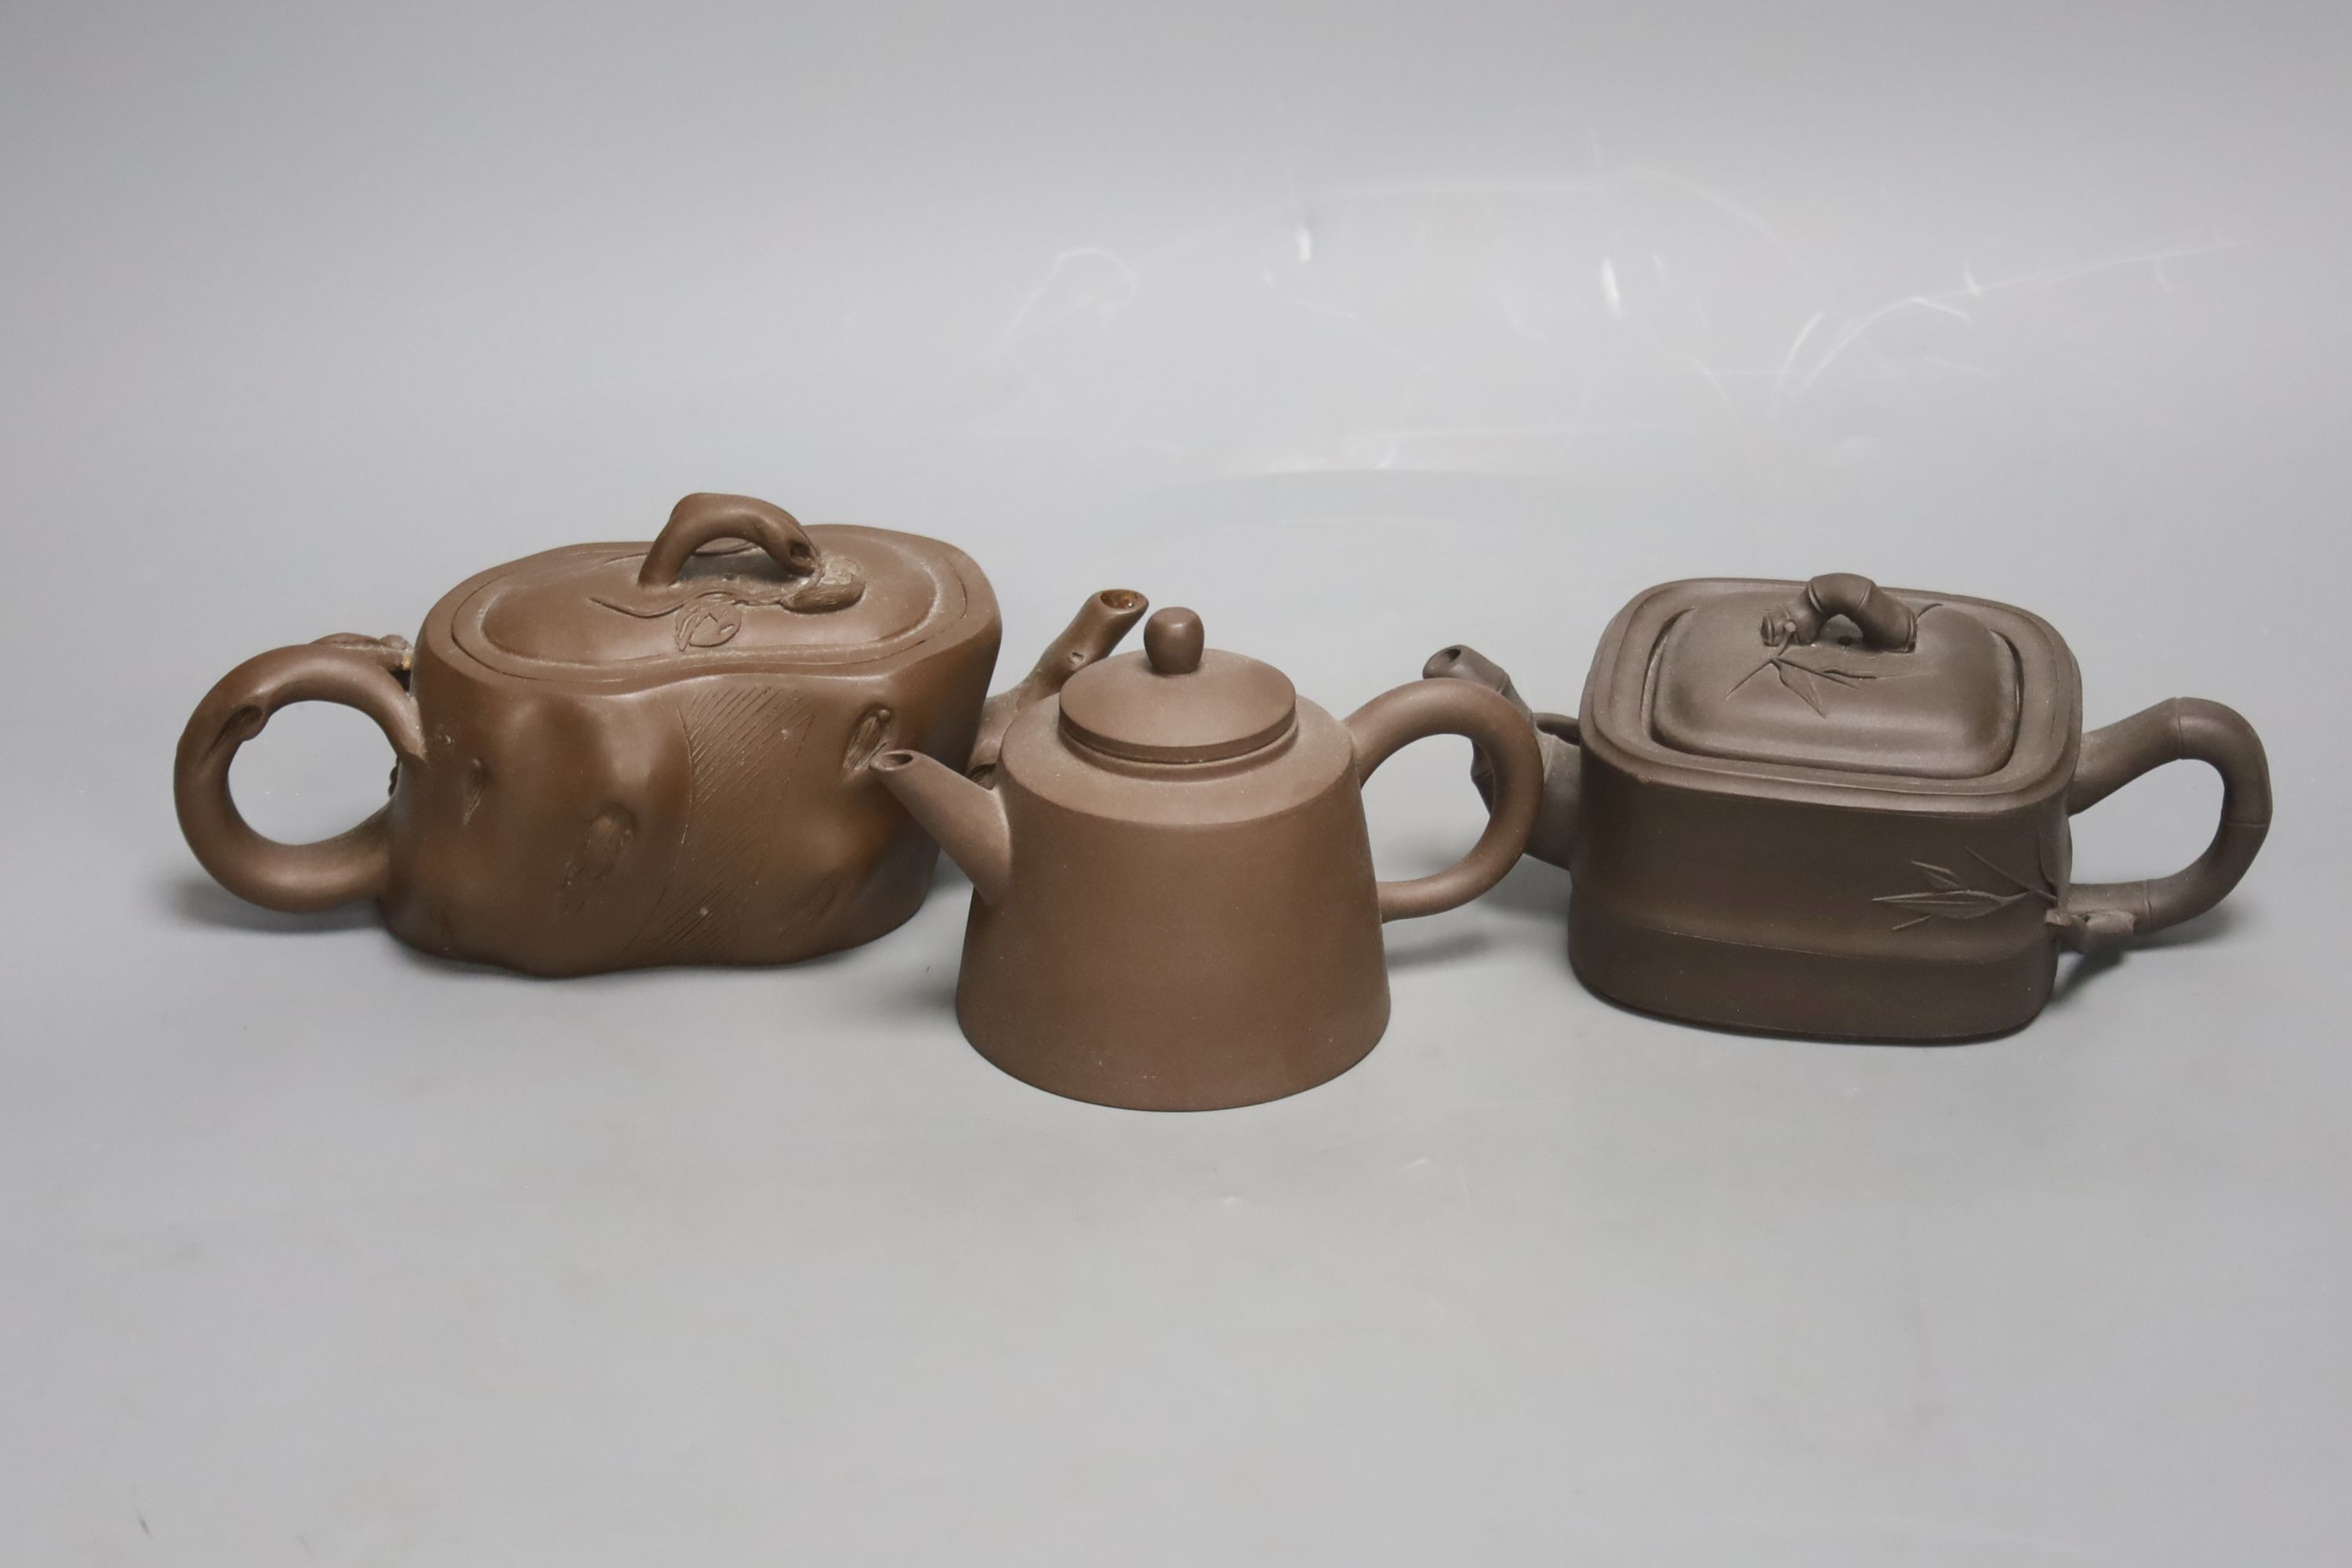 Three Chinese Yixing teapots - Image 2 of 4